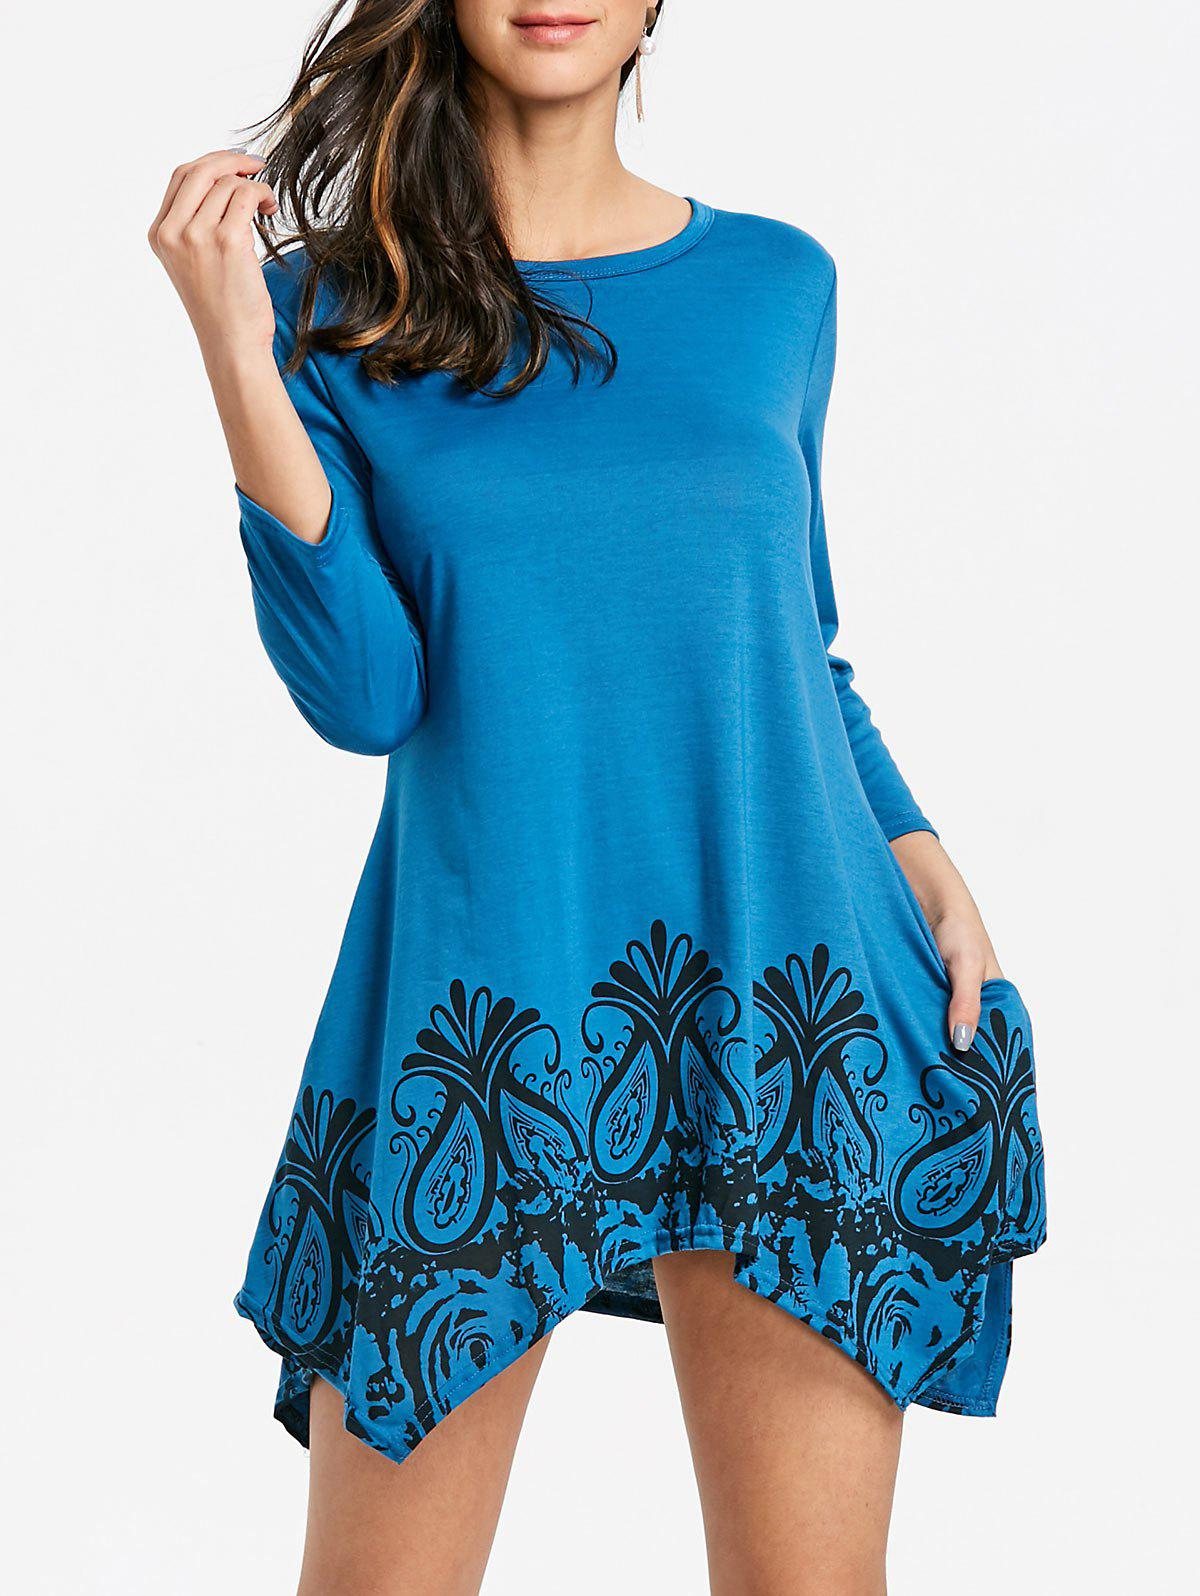 Floral Print Handkerchief Pockets Dress - BLUE S